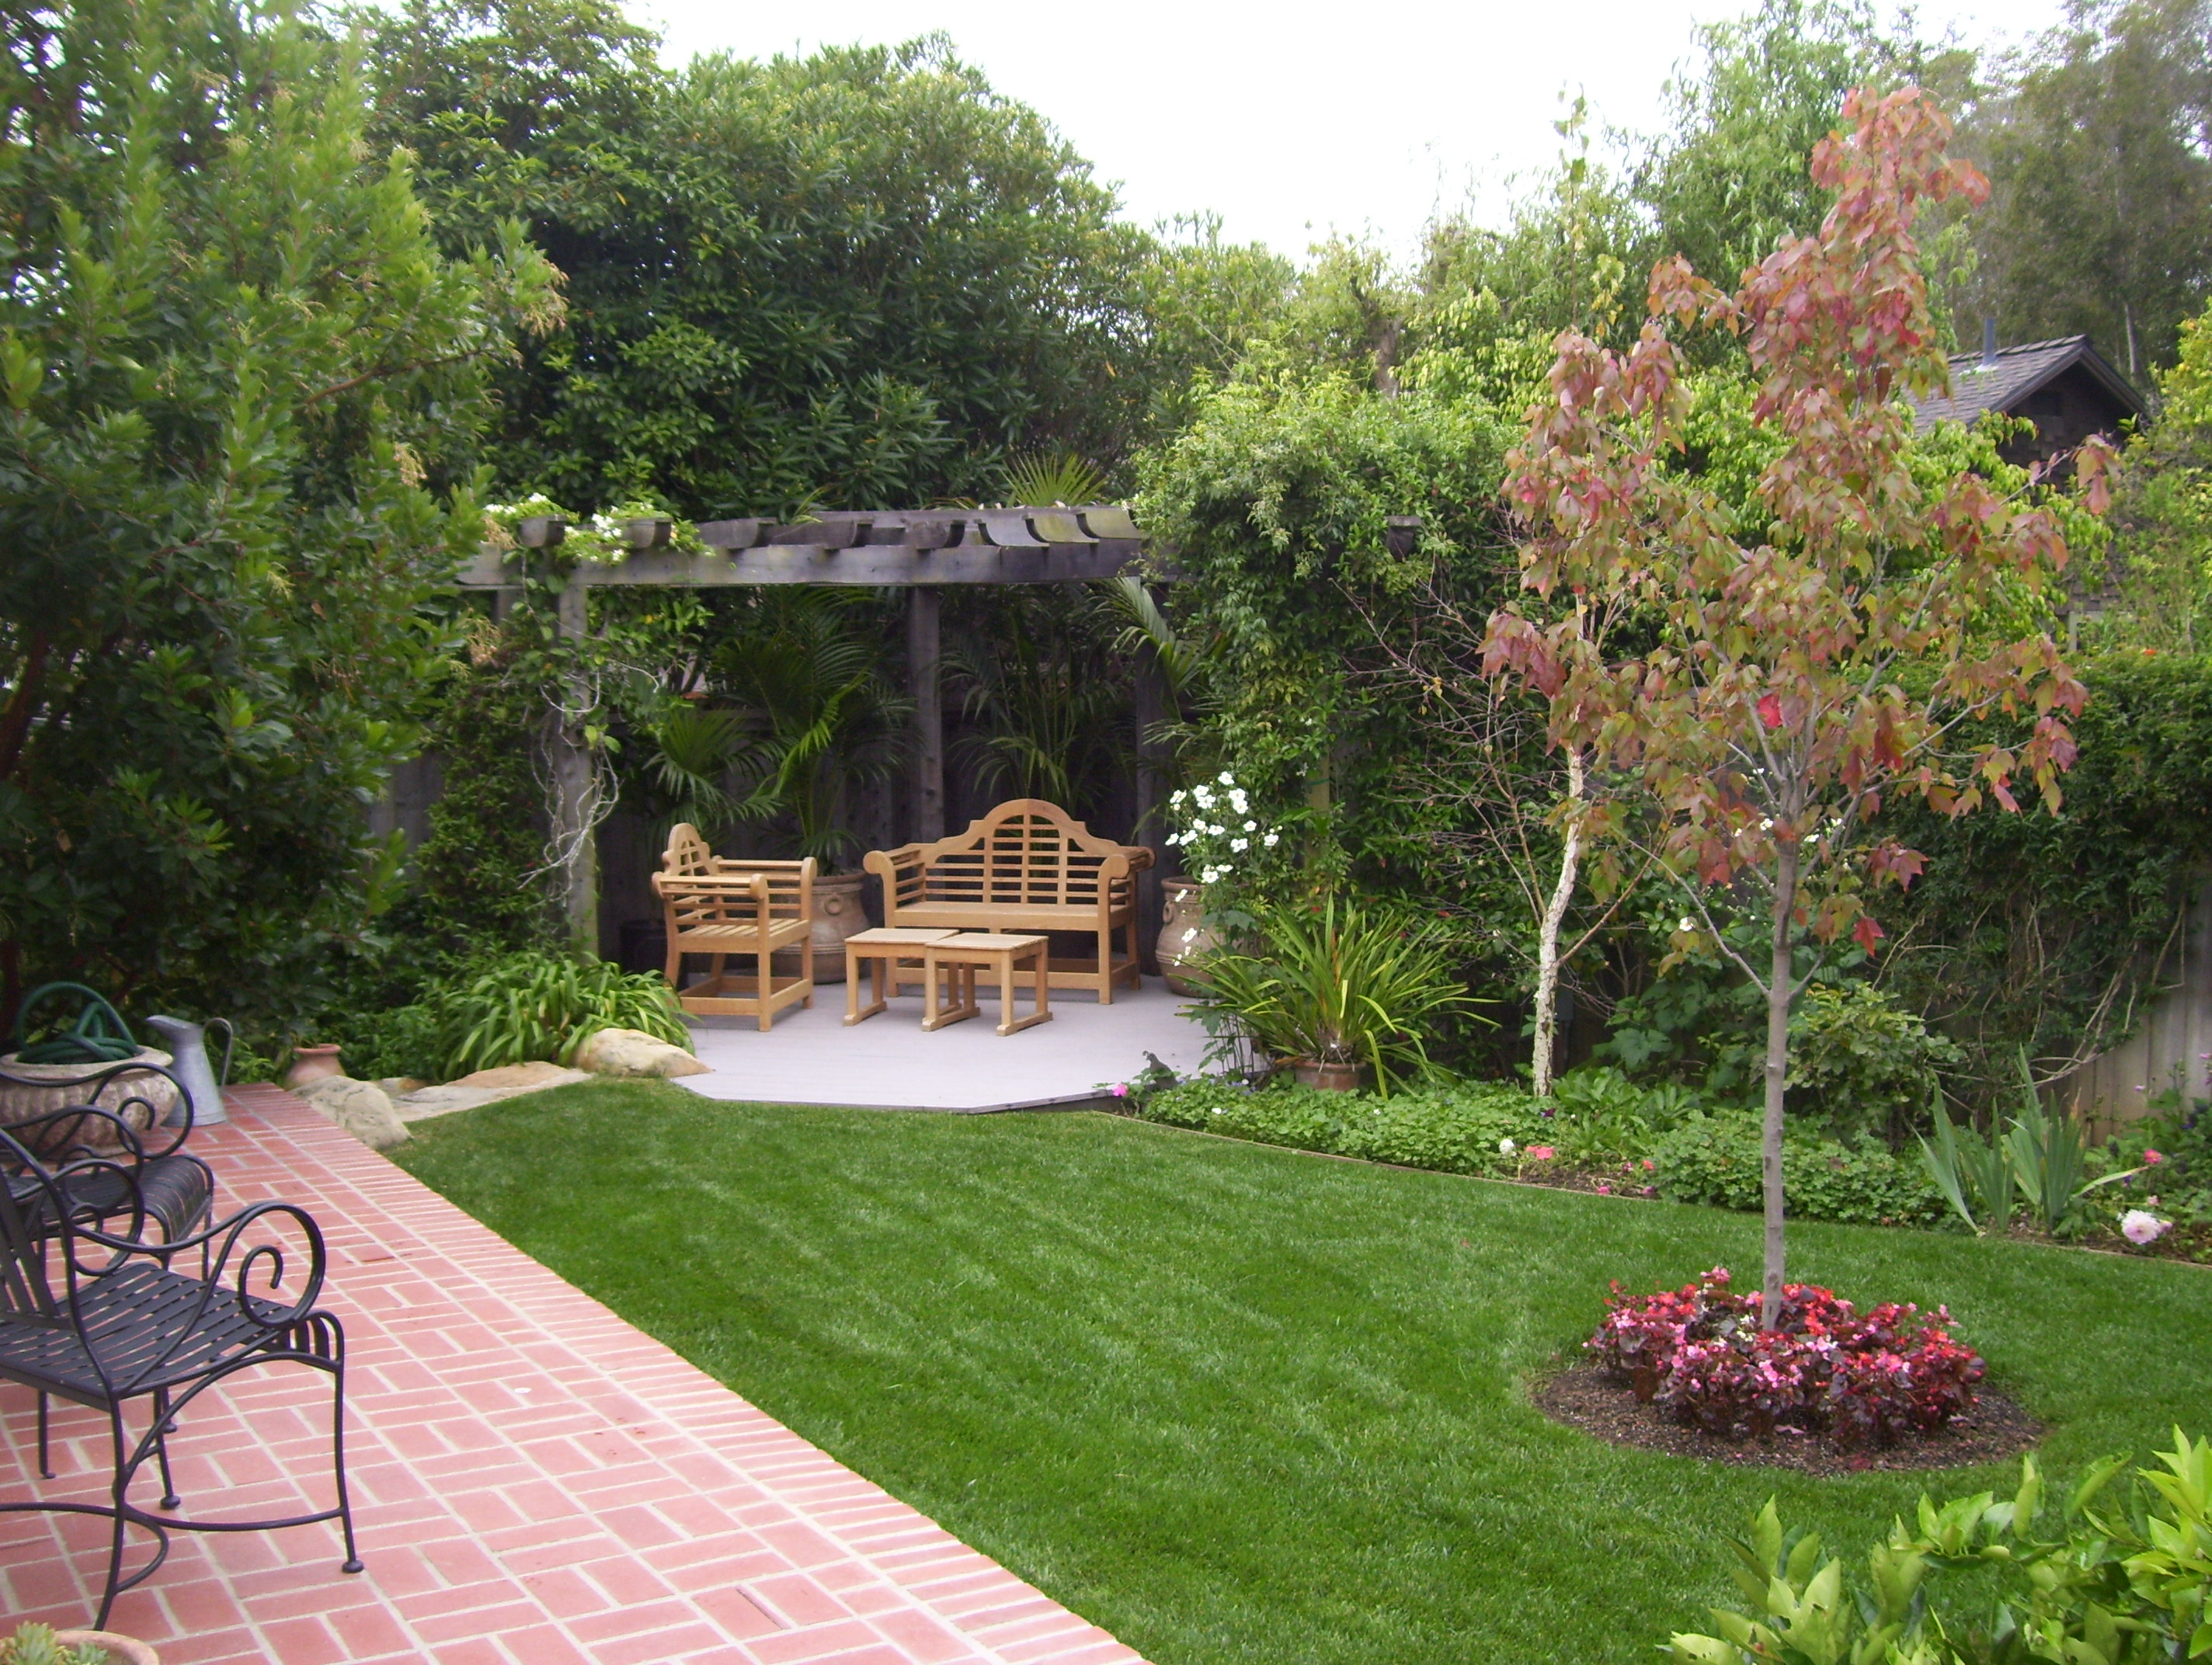 Backyard landscaping ideas santa barbara down to earth for Outside landscaping ideas